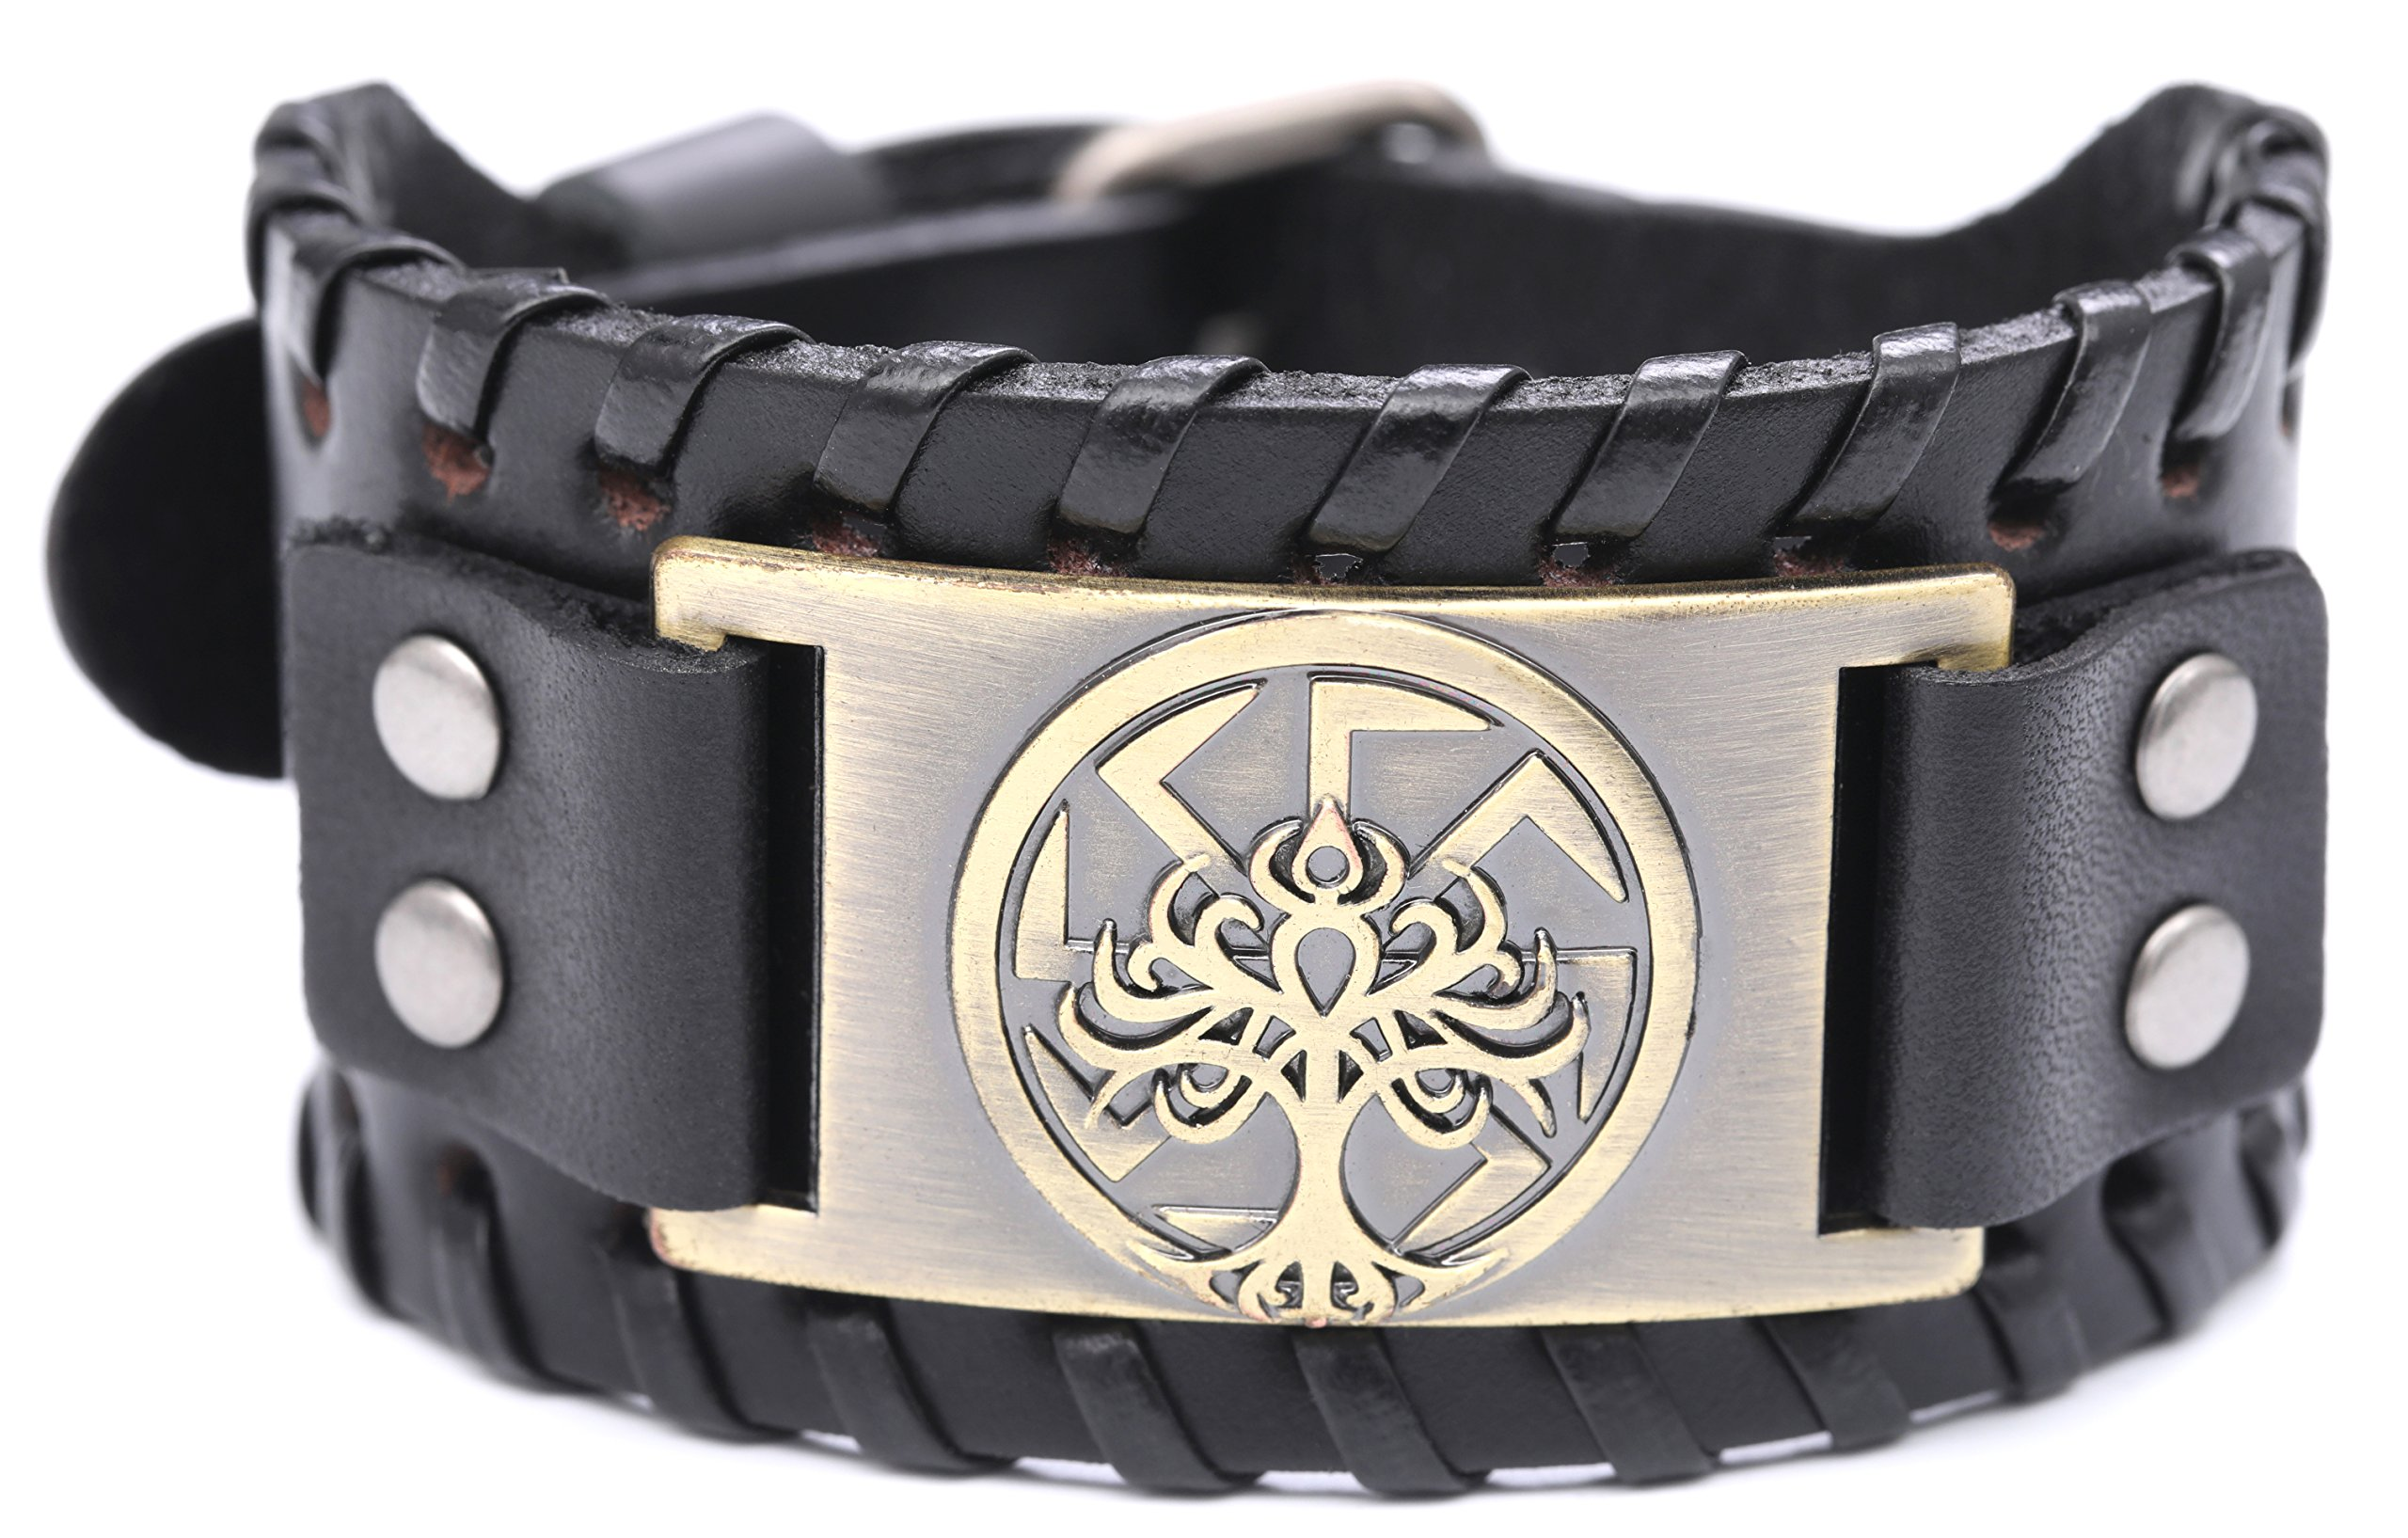 VASSAGO Vintage Norse Myth Tree of Life Yggdrasil Slavic Kolovrat Symbol Sun Wheel Amulet Cuff New-style Leather Bracelet (Black Leather, Antique Bronze)